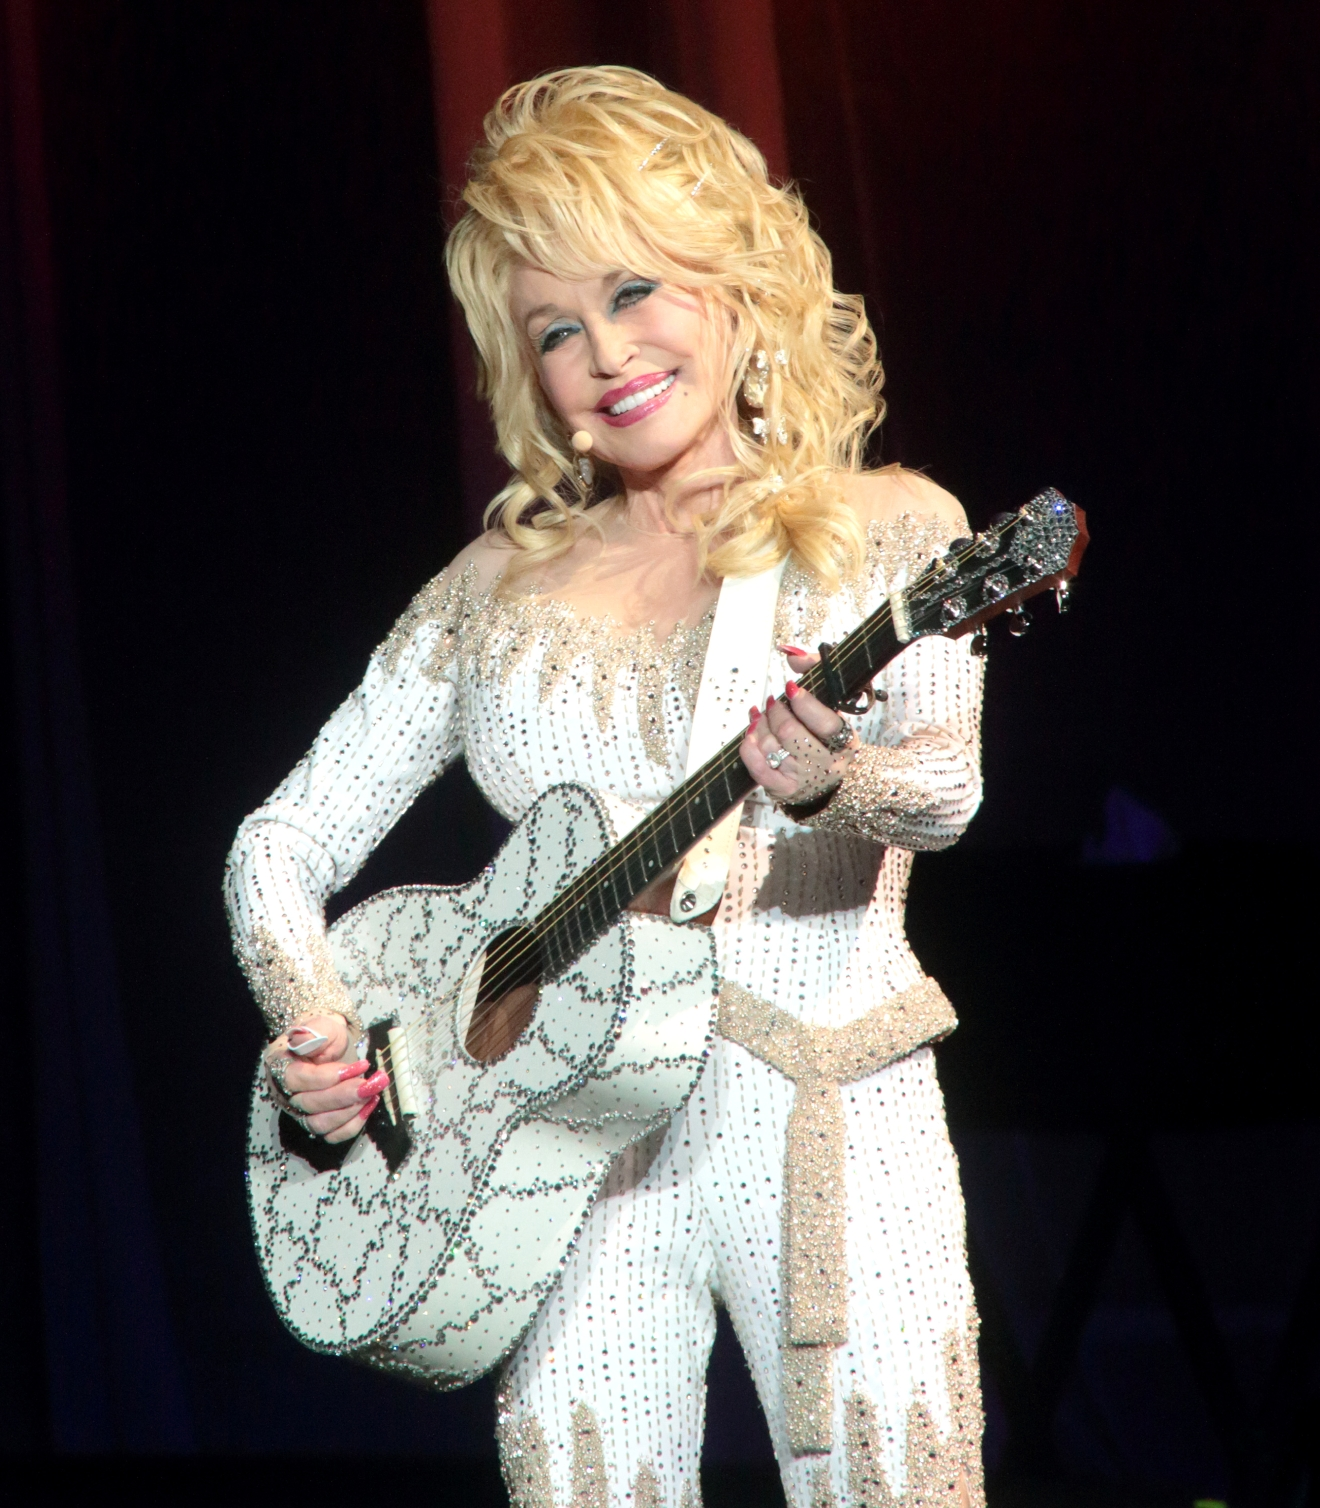 Dolly Parton performs in concert during her Pure & Simple Tour at The Mann Center for the Performing Arts on Wednesday, June 15, 2016, in Philadelphia. (Photo by Owen Sweeney/Invision/AP)